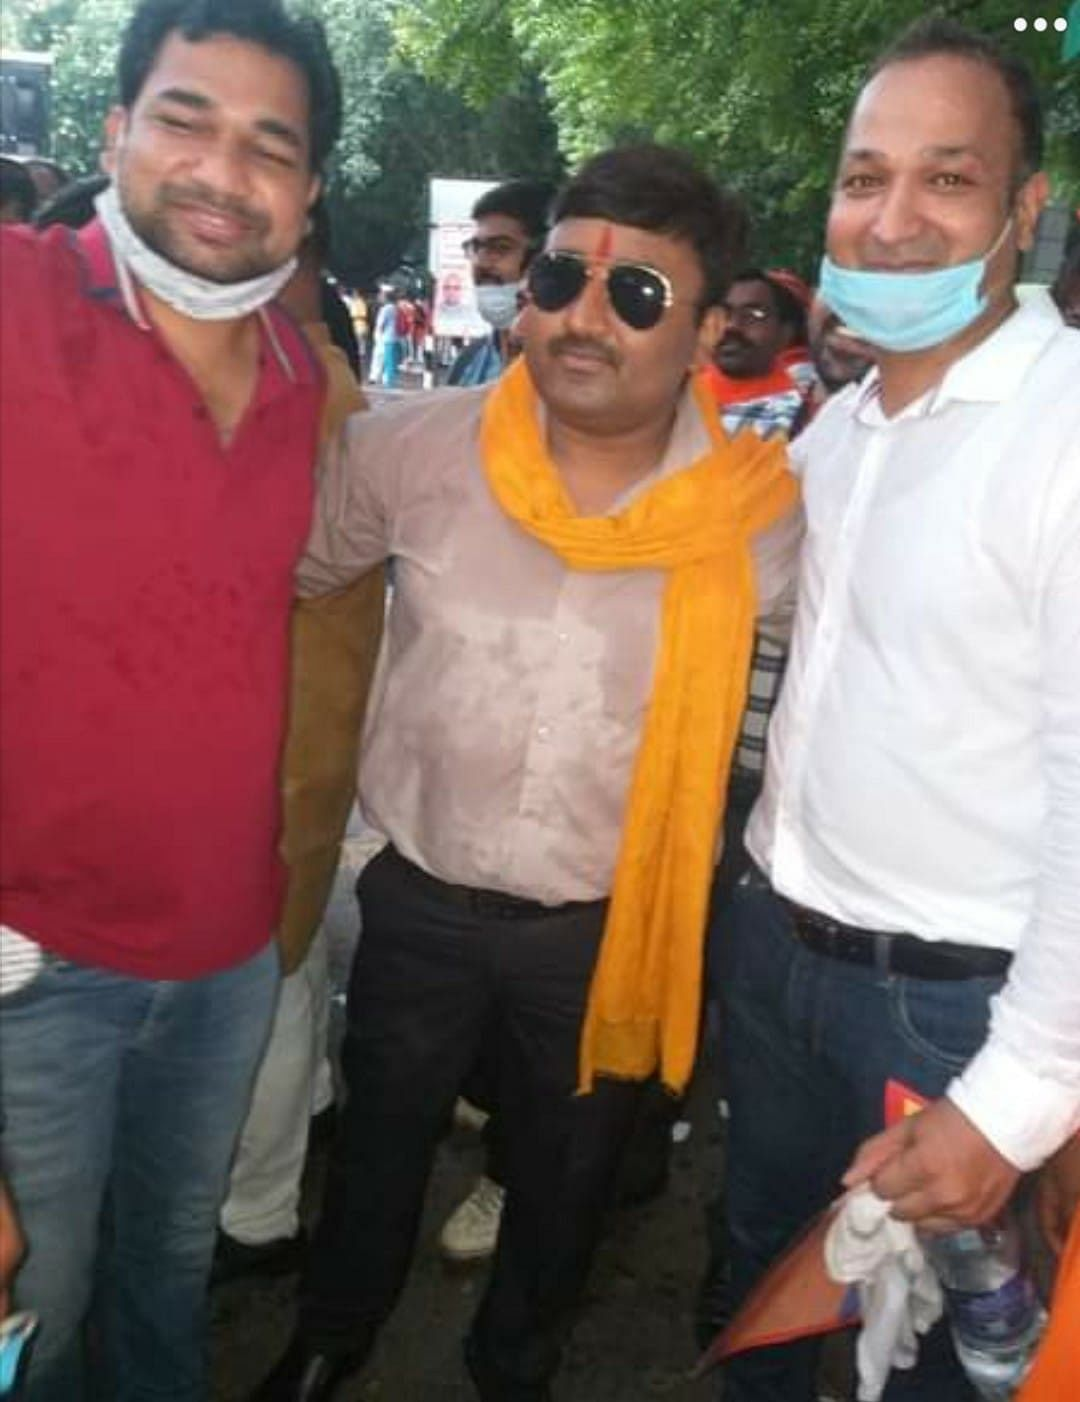 """<div class=""""paragraphs""""><p>In the middle is Deepak Singh posing with two others at the 8 August protest.</p></div>"""